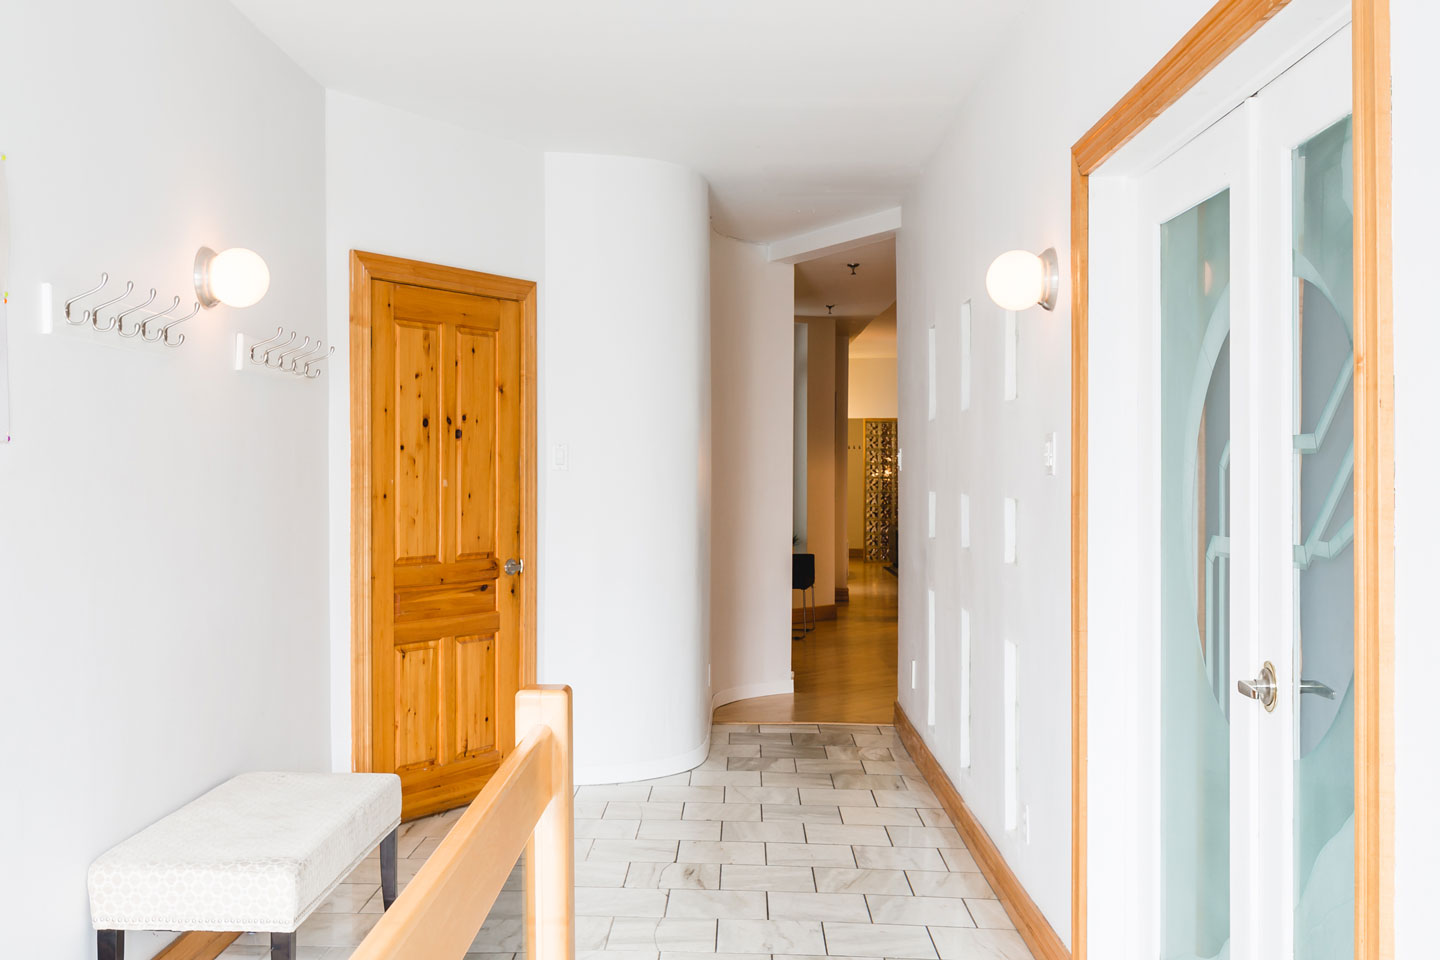 City chalet: spacious entry hall